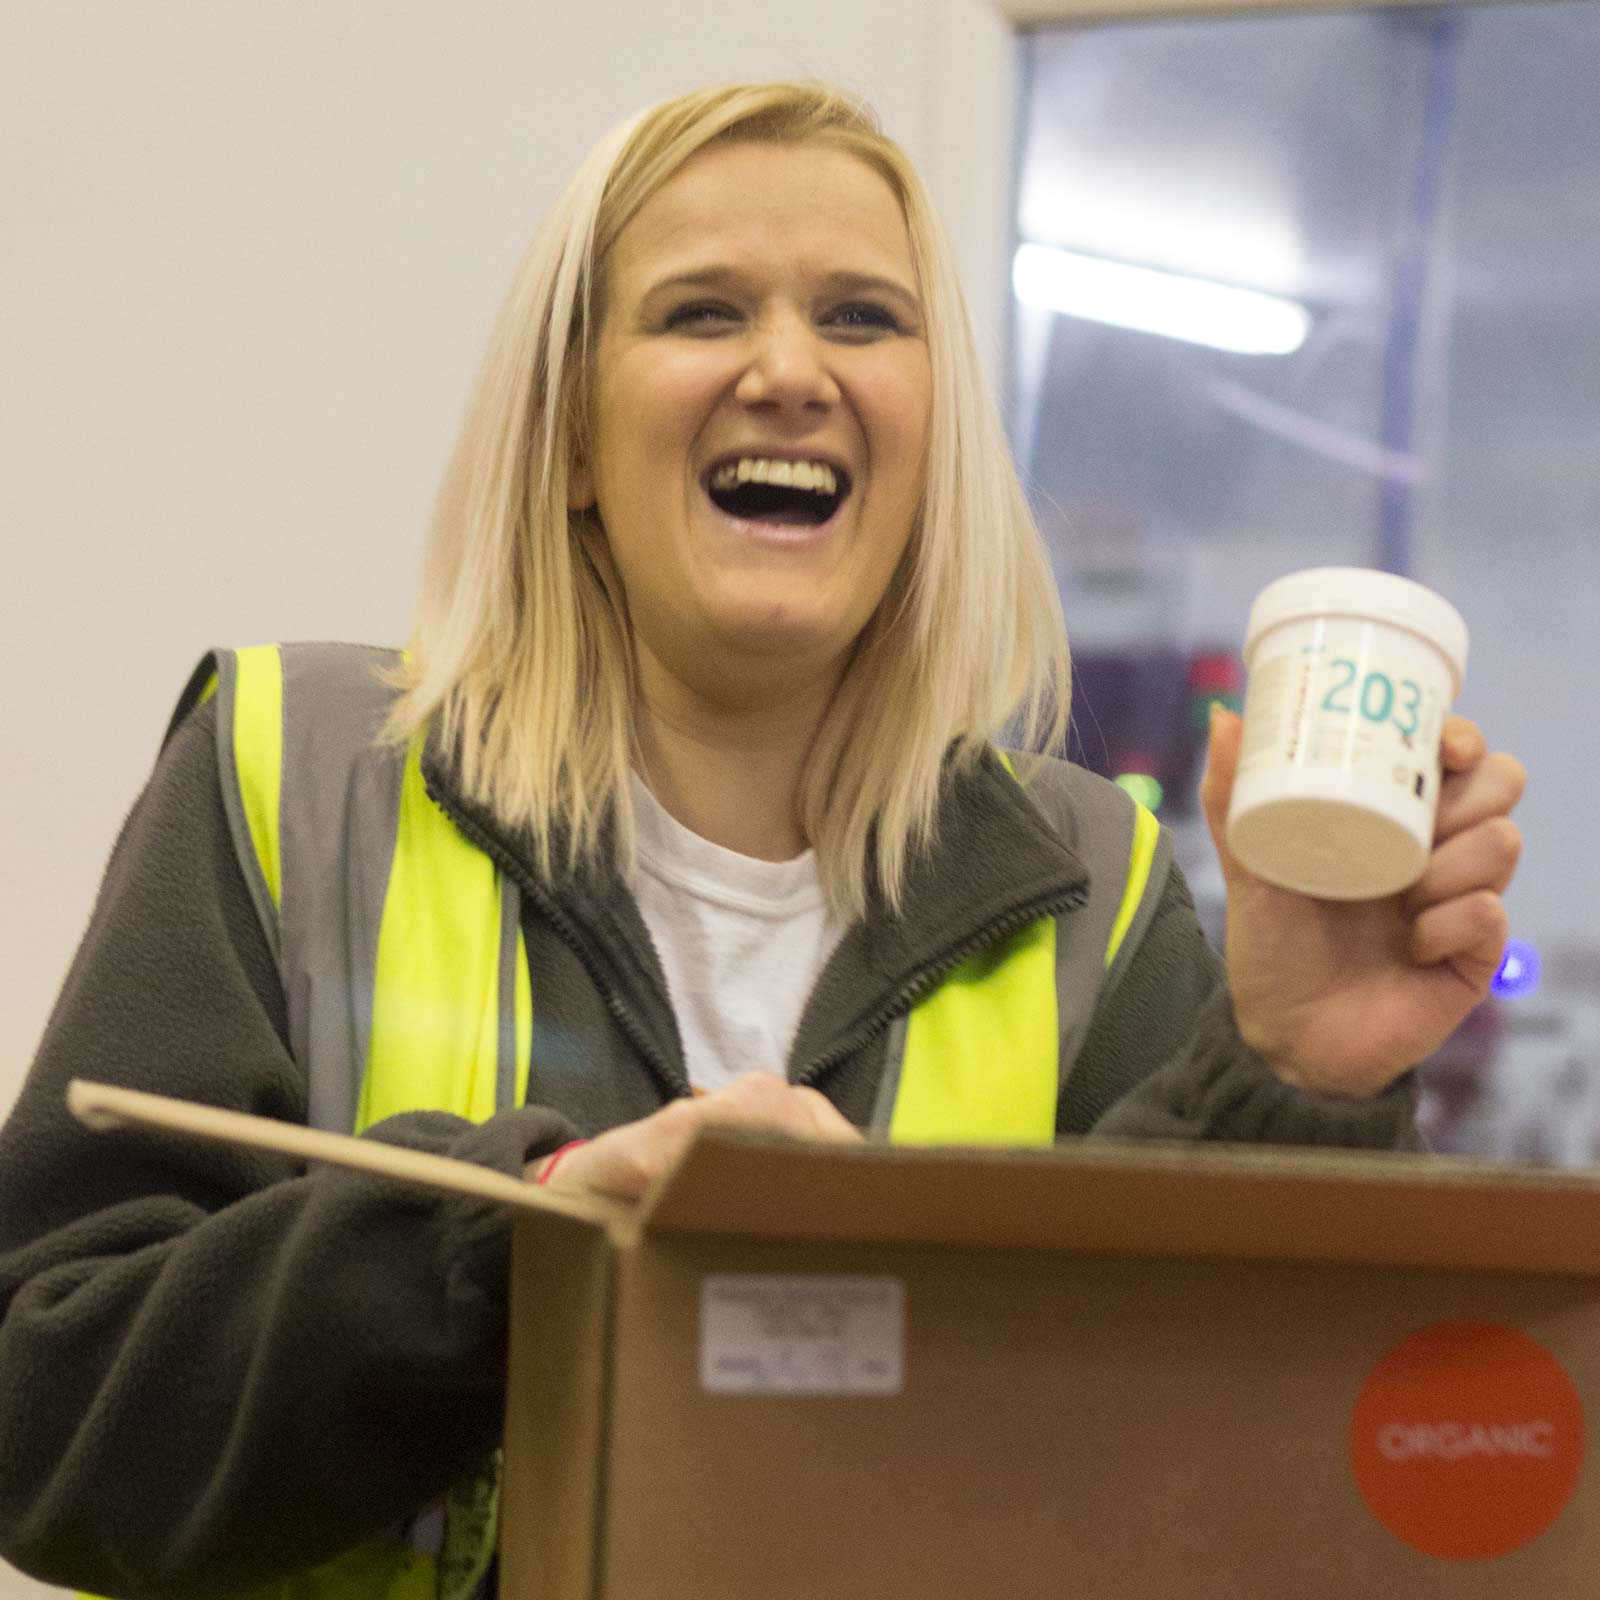 """Gemma Louise Jones Team leader FBA (Amazon Dispatch)  """"I originally started in June 2017 as agency staff but after only 2 months I was taken on as a full time Naissance employee. By being part of the team and ensuring all tasks were completed on time the hard work I put in was recognized by management and I was approached to apply for team leader position within FBA (Amazon Dispatch). This new role came with the challenge of more responsibility, but I had company support and all additional training needed. Since becoming team leader I've excelled with confidence and find great pleasure in seeing the team working hard alongside me to get the job done efficiently and on time. I love coming to work every day because I have a fantastic team to work with and we all share the same goals to making this business a bigger and better success.""""  Favourite product: """"My favorite product is orange sweet essential oil as it's a lovely aroma 😊"""""""